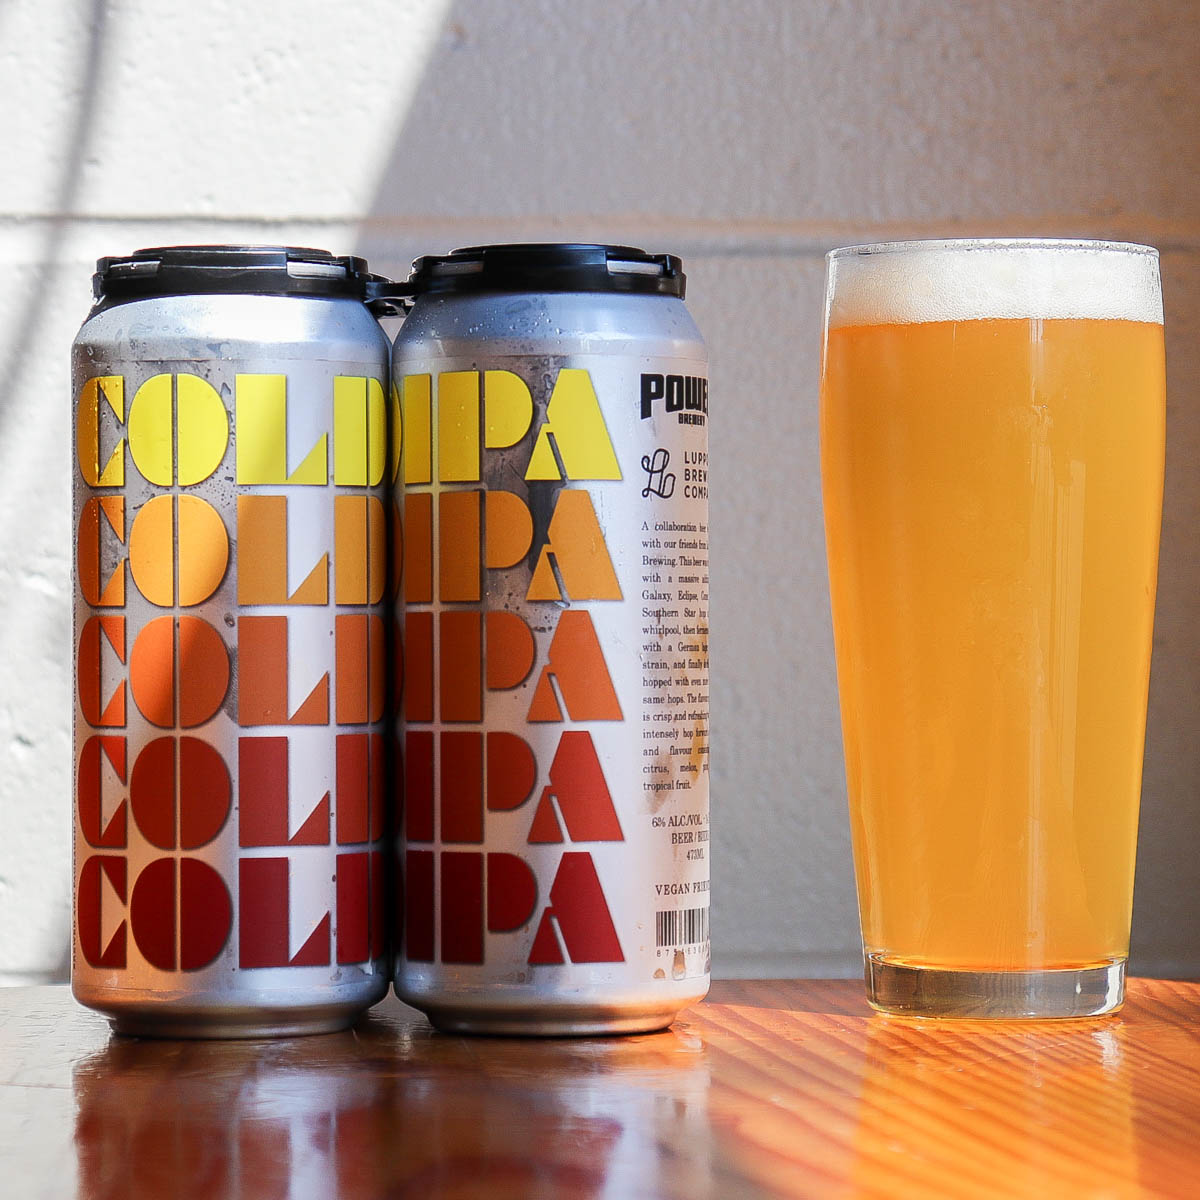 Cold IPA Collab with Powell Brewery